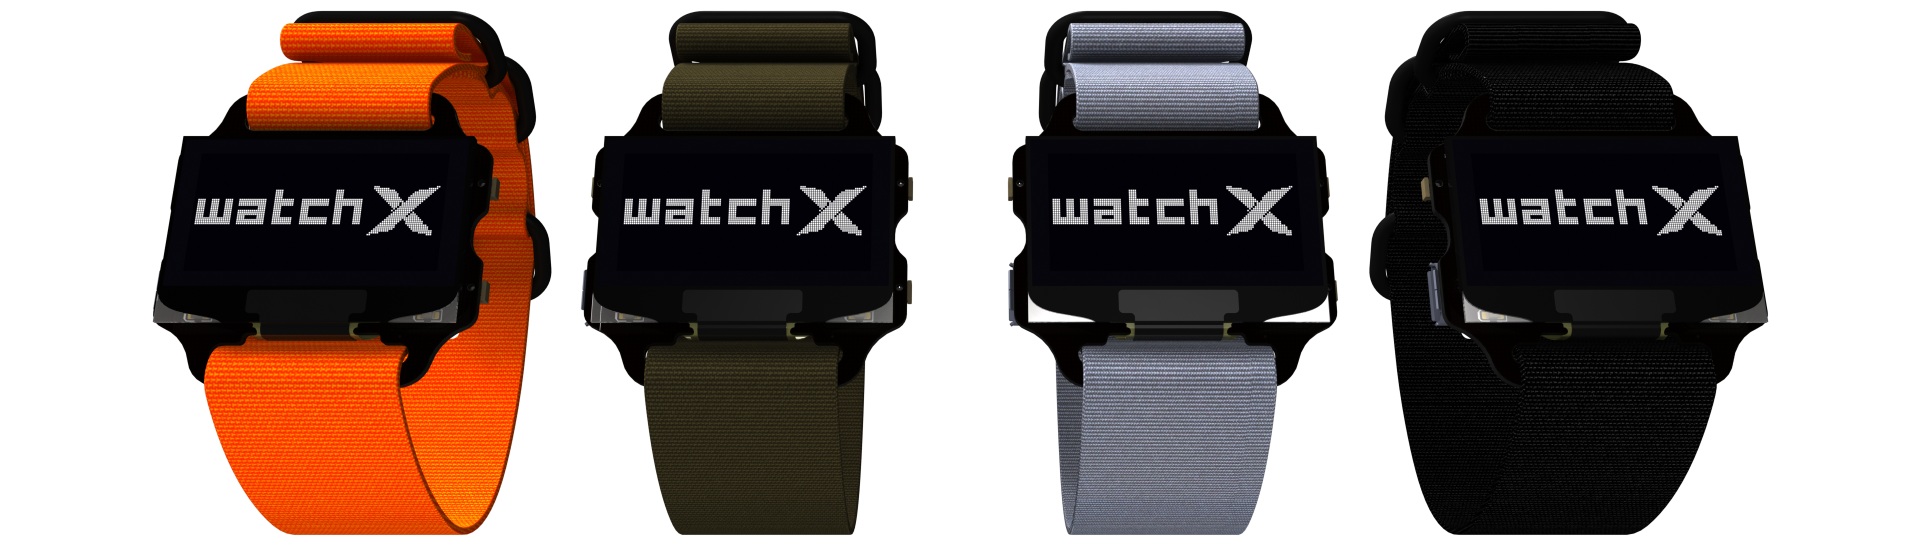 watchX_colors